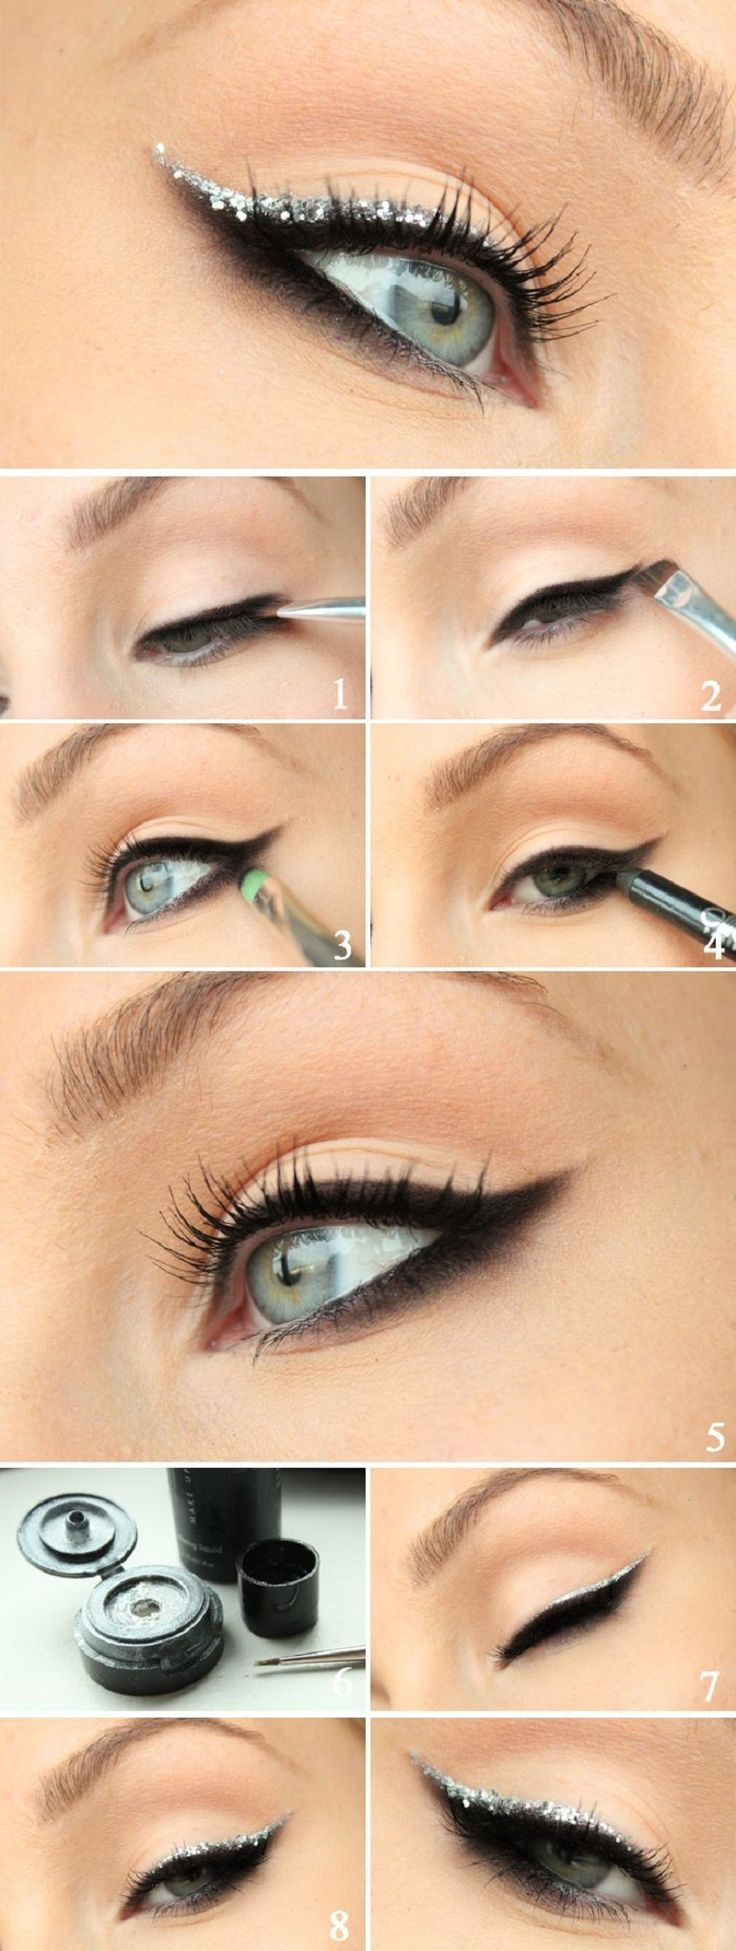 Silver Sparkle Eyeliner Tutorial I #makeup #cosmetics #beauty #howto #tutorial #eyes #eyeshadow #face #eyeliner www.pampadour.com